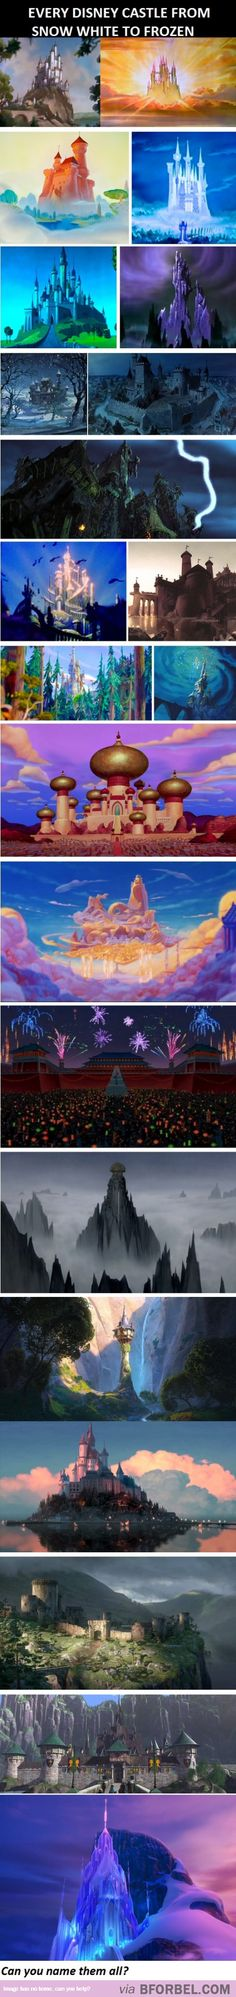 22 Disney Castles Across Time - If someone can name all of these for me (or most of them) you earn my eternal gratitude and possibly a cookie.